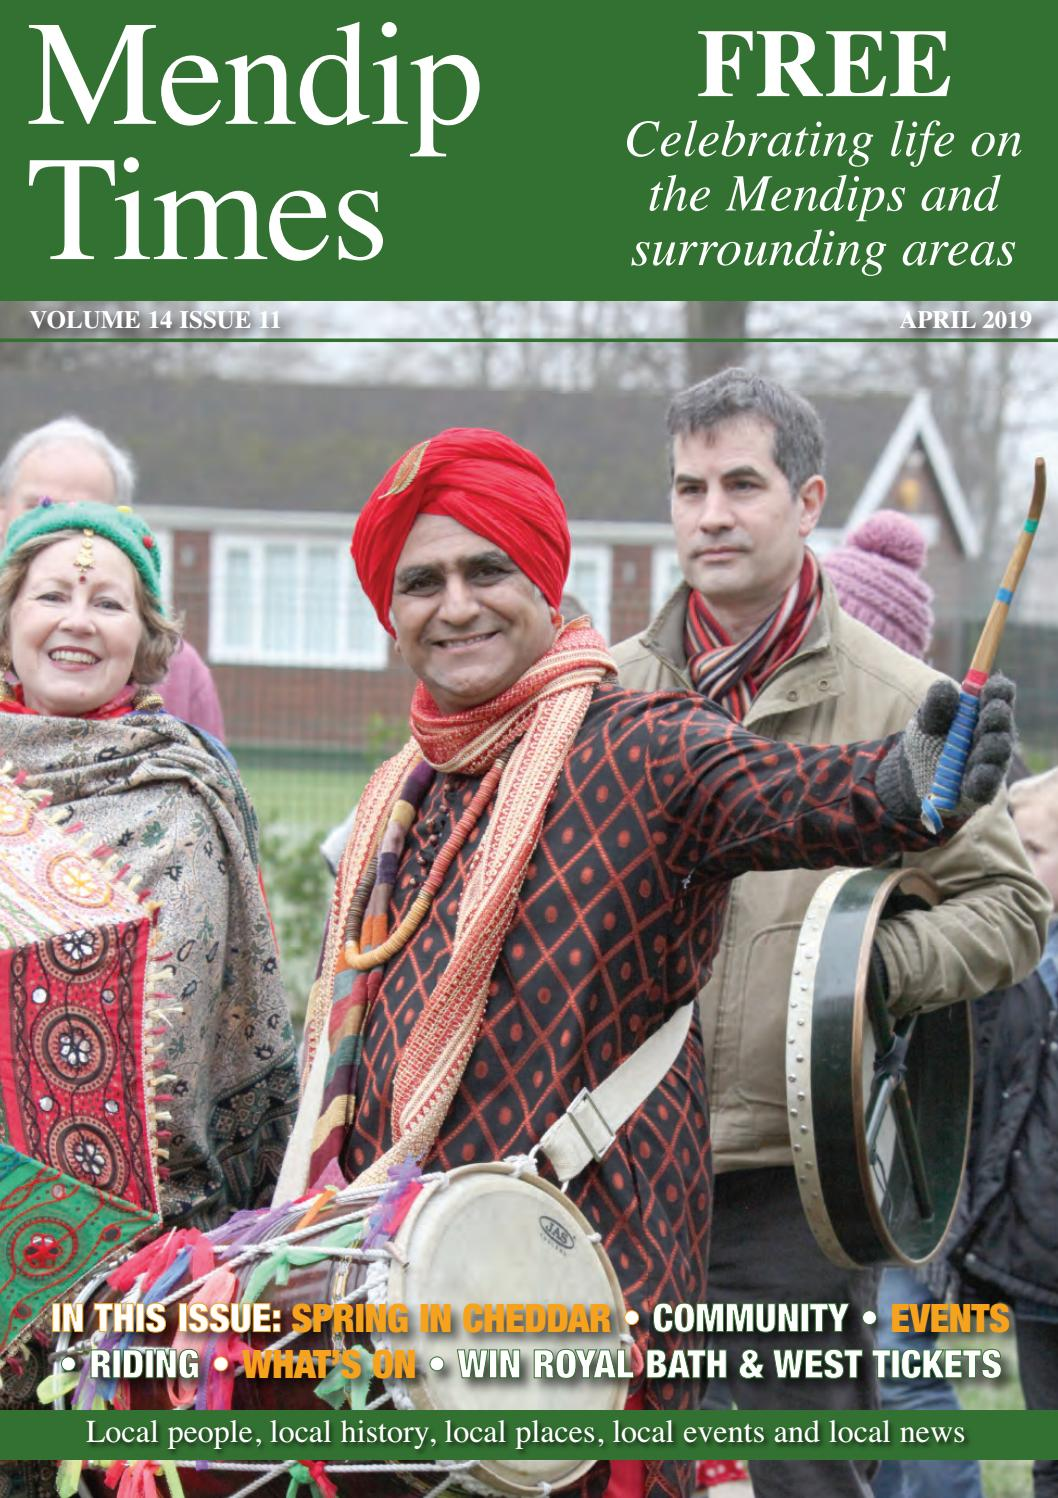 Issue 11 - Volume 14 - Mendip Times by Media Fabrica - issuu